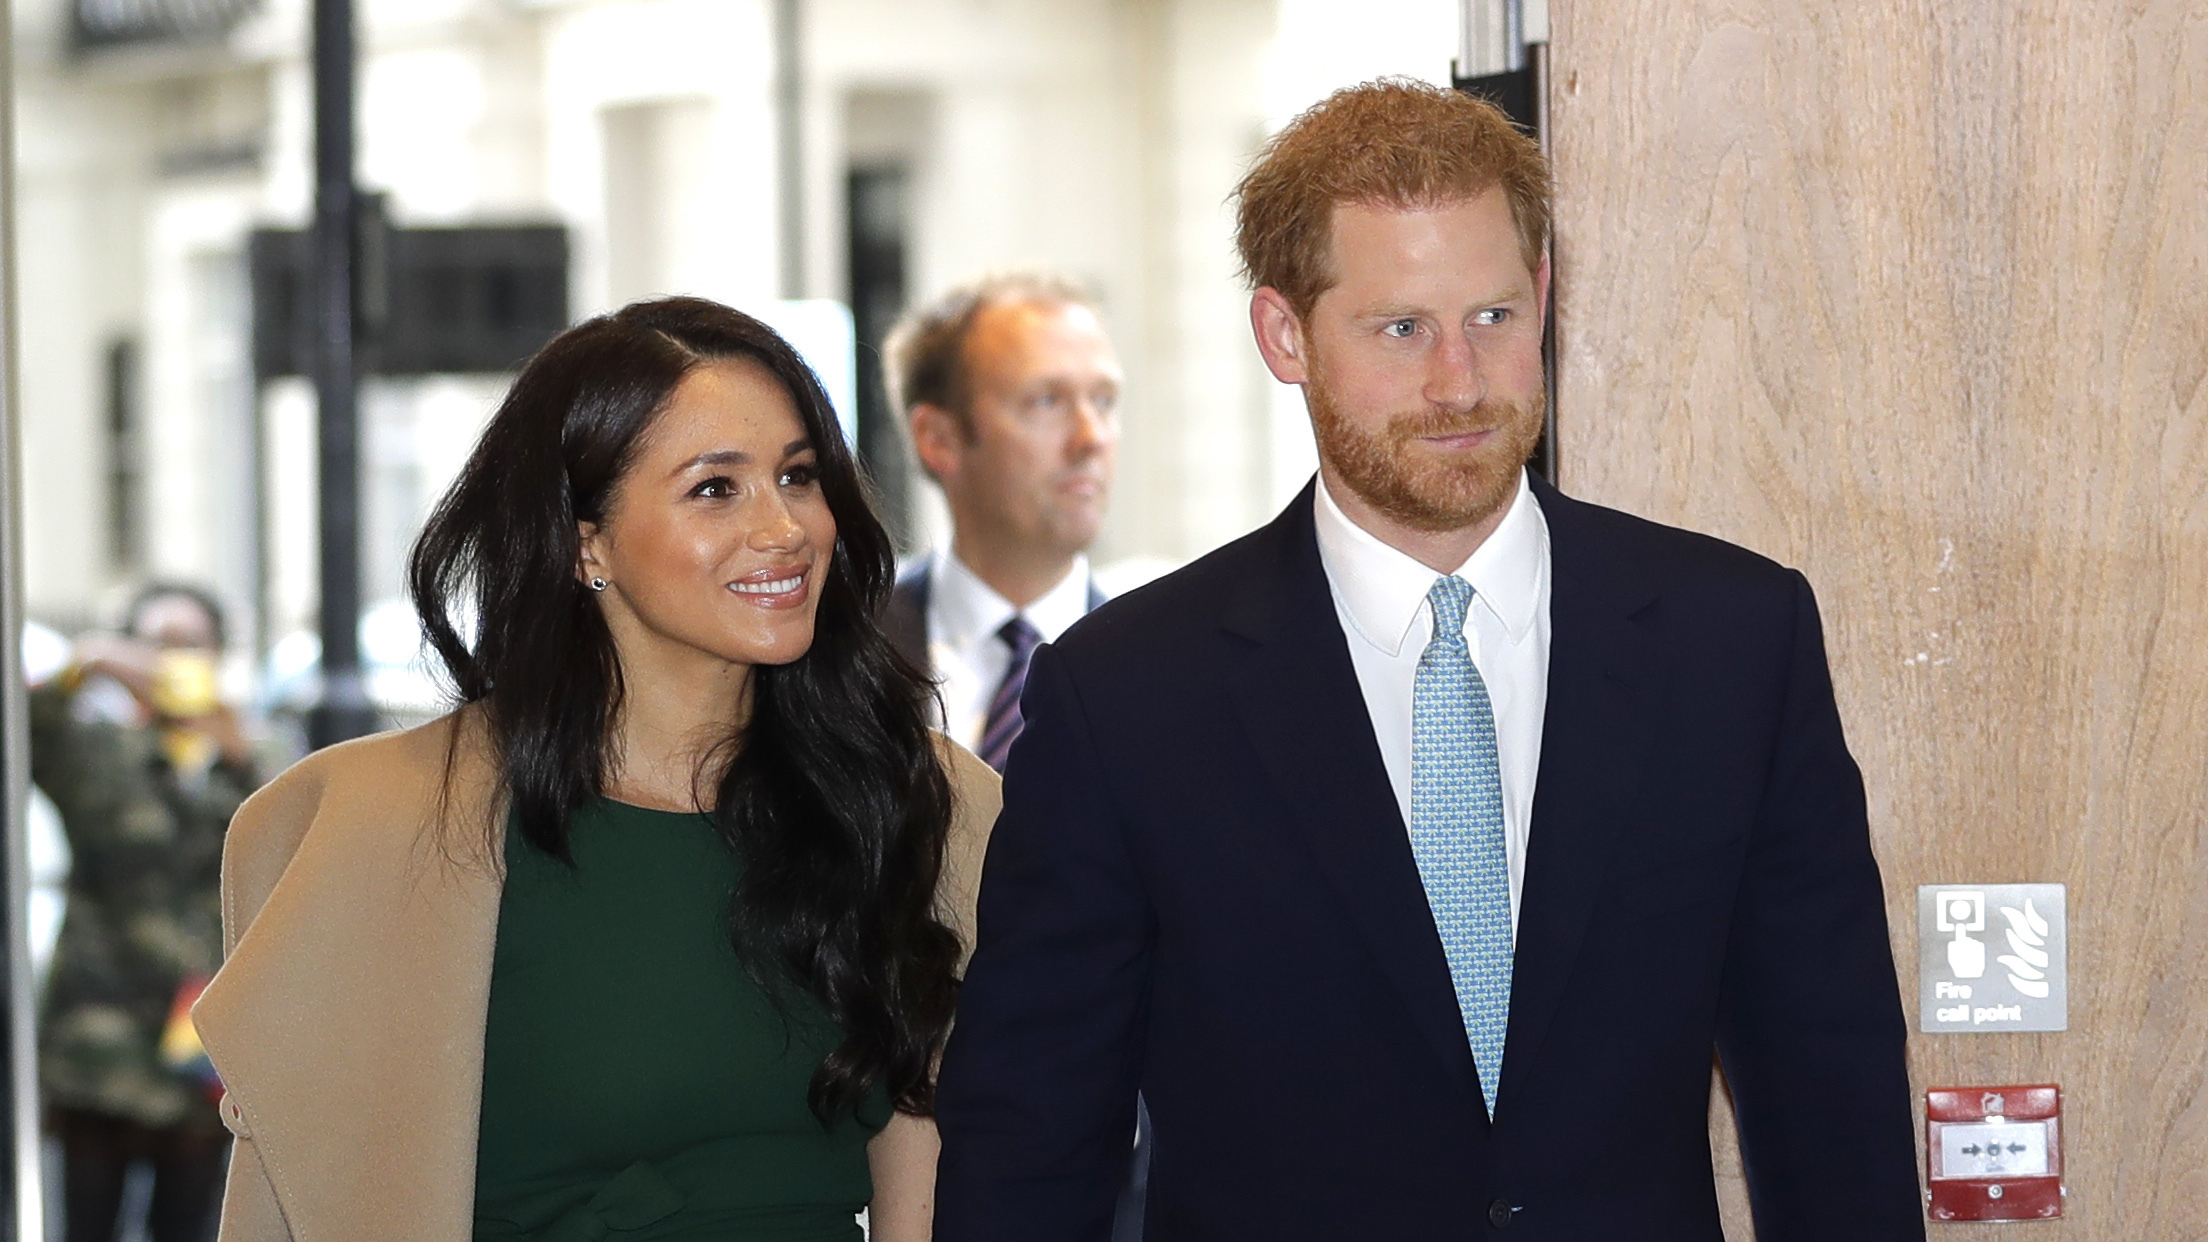 Westlake Legal Group harrymarkle Prince Harry may have landed Meghan Markle Disney voiceover job Nate Day fox-news/world/world-regions/united-kingdom fox-news/world/personalities/british-royals fox-news/travel/general/disney fox-news/topic/royals fox-news/person/prince-harry fox-news/person/beyonce fox-news/entertainment/tv fox-news/entertainment/movies fox-news/entertainment/celebrity-news/meghan-markle fox-news/entertainment/celebrity-news fox news fnc/entertainment fnc article 4966b3ce-2fc2-580b-9809-40b60725ab40